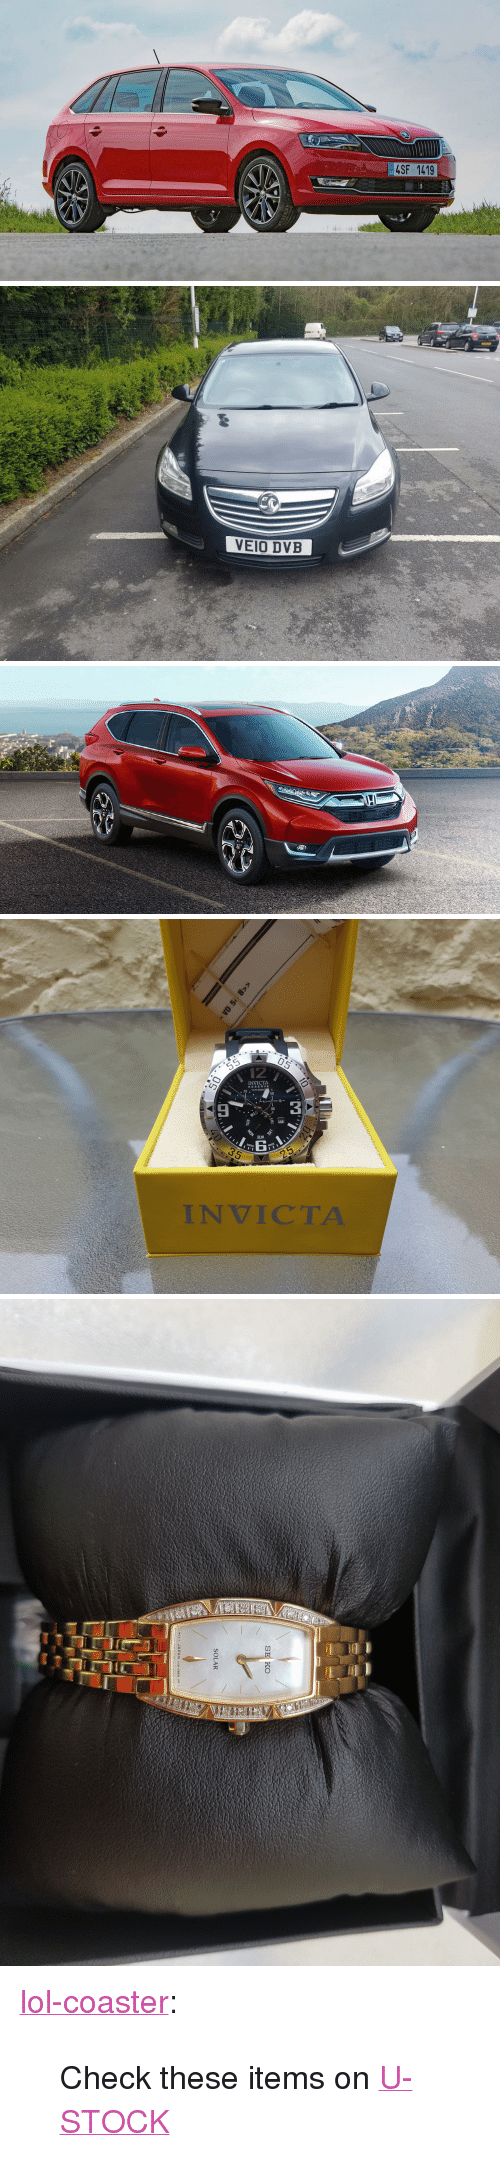 "Lol, Tumblr, and Blog: 4SF 1419  Cz   VEIO DVB   05  12  INVICTA  RESERVE  3  30  SUN  MADE  INVICTA <p><a href=""http://lol-coaster.tumblr.com/post/161401137257/check-these-items-on-u-stock"" class=""tumblr_blog"">lol-coaster</a>:</p><blockquote><p>Check these items on <a href=""http://www.u-stock.com"">U-STOCK</a></p></blockquote>"